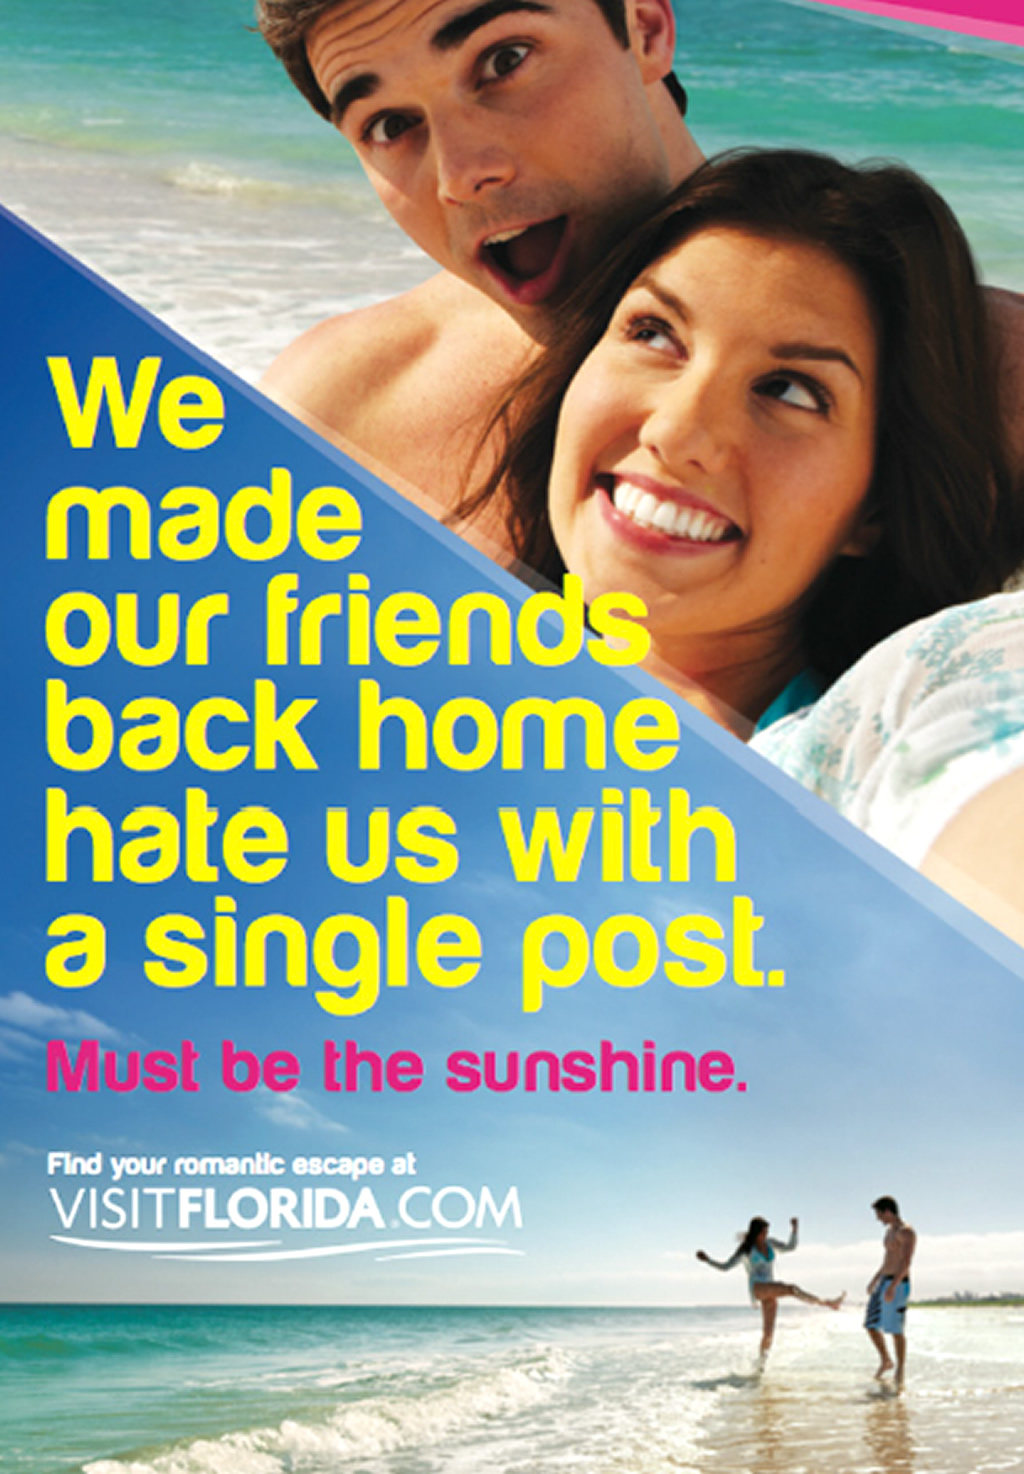 Romantic Escape, Print Ads of Tourism Brand Marketing Campaign by Visit Florida